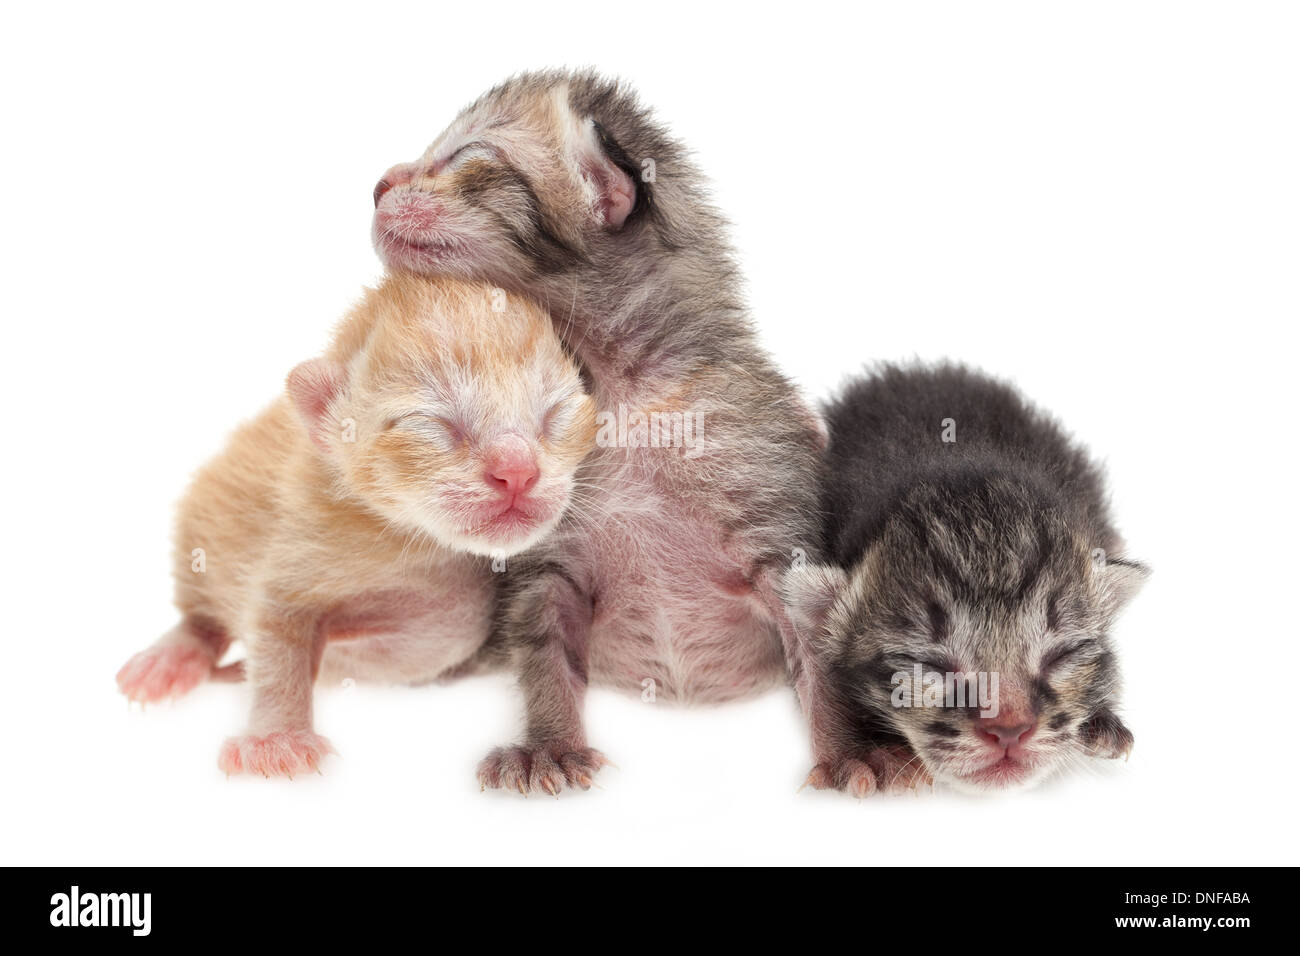 Cute new born kittens on white background - Stock Image